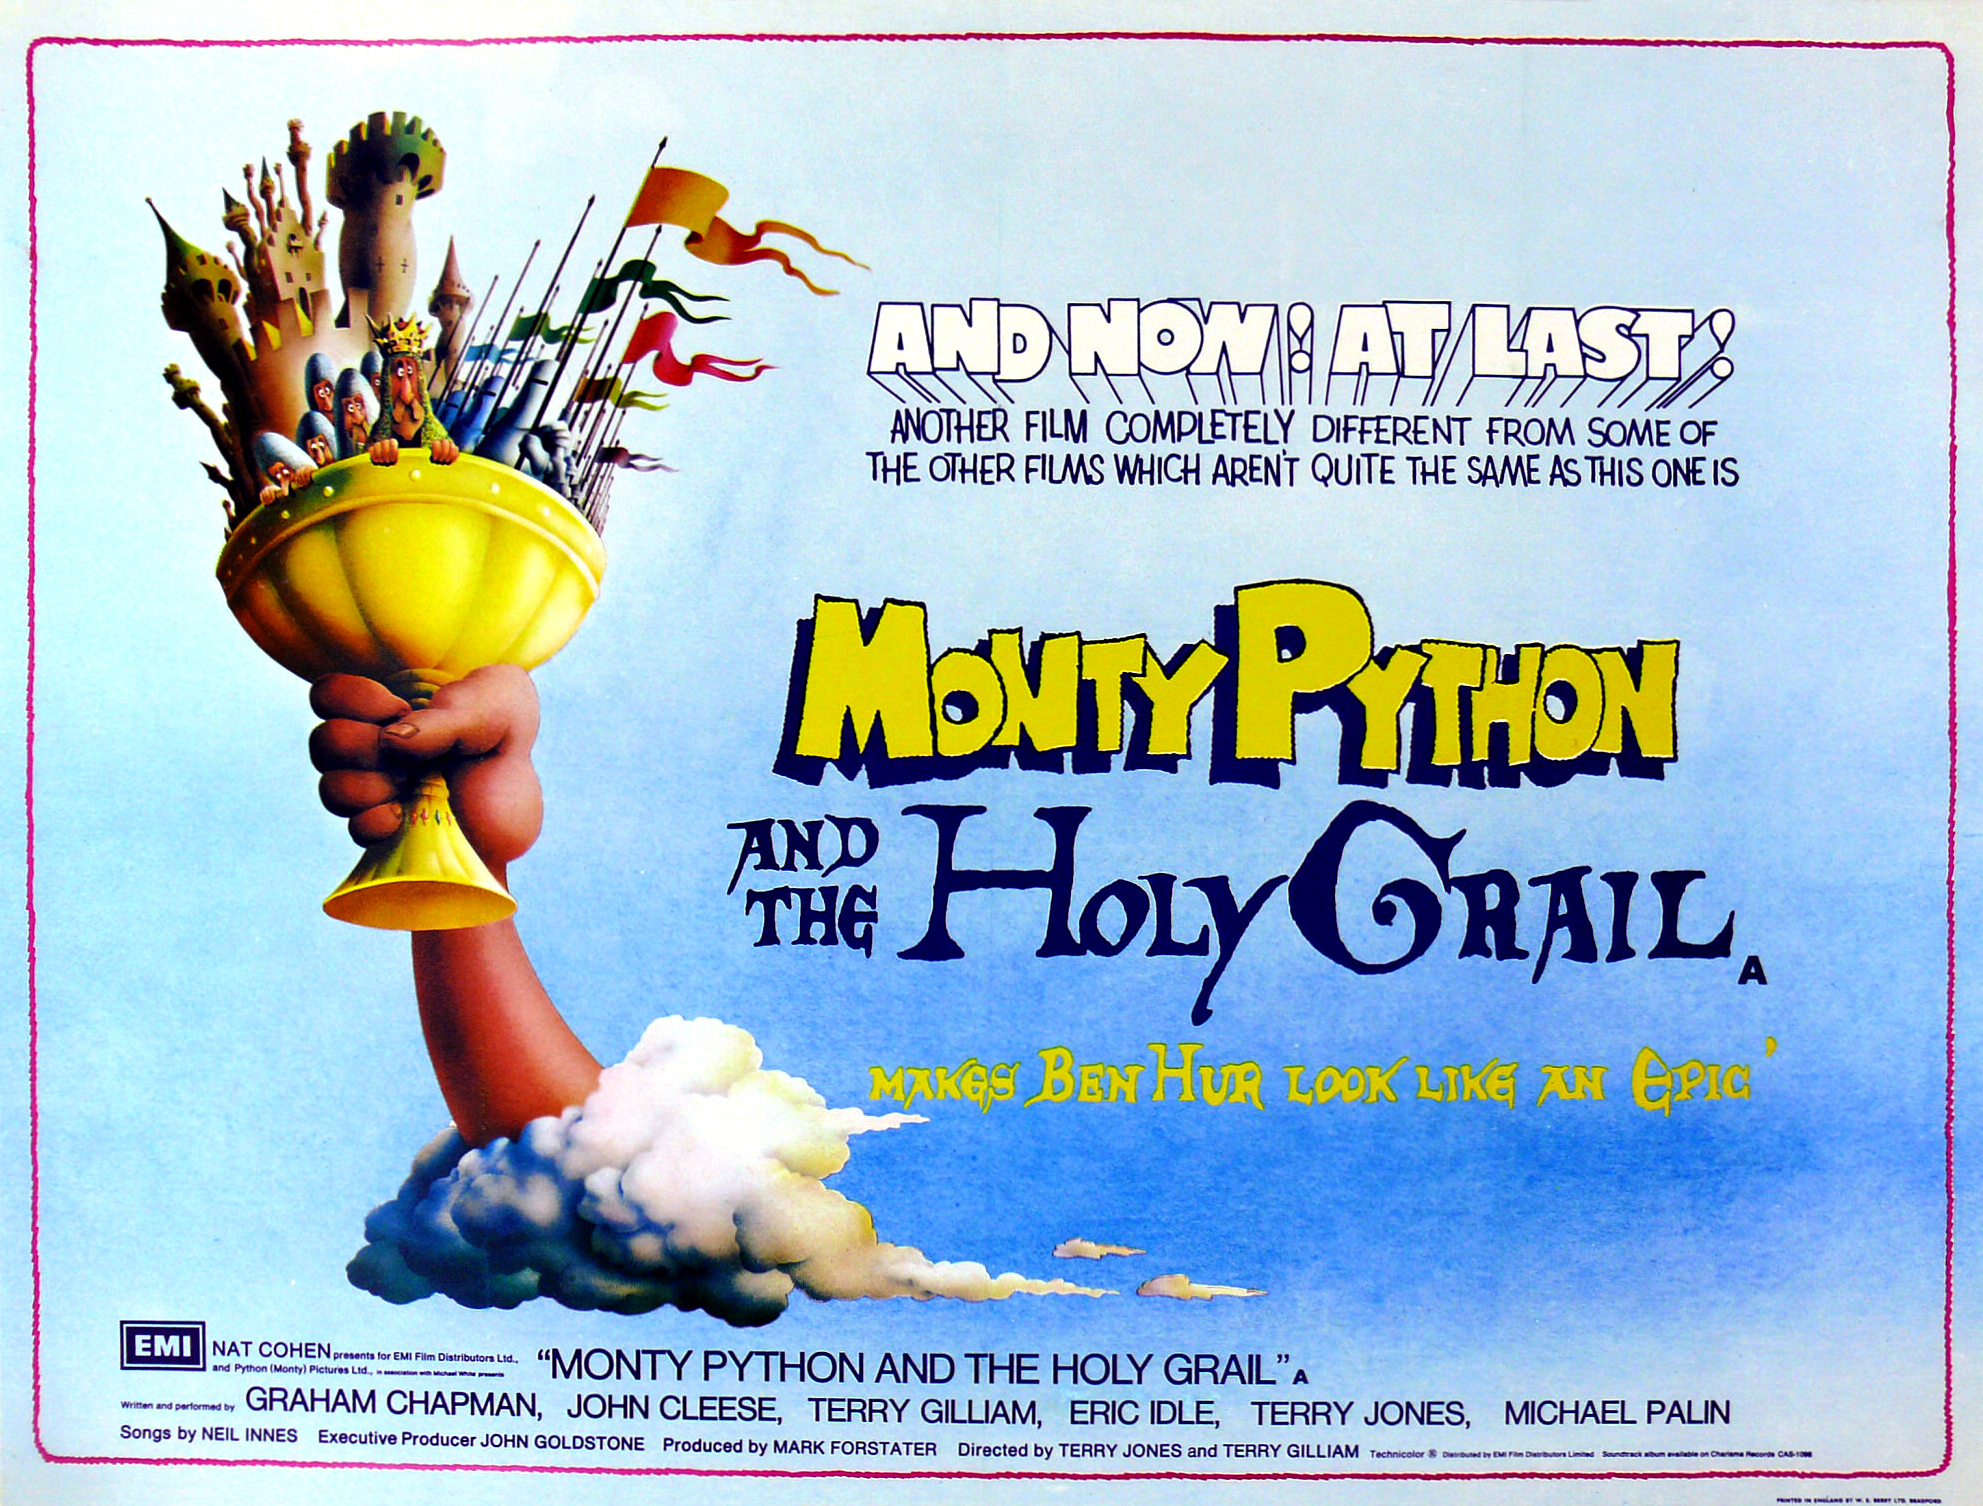 """Monty Python and the Holy Grail"" poster."